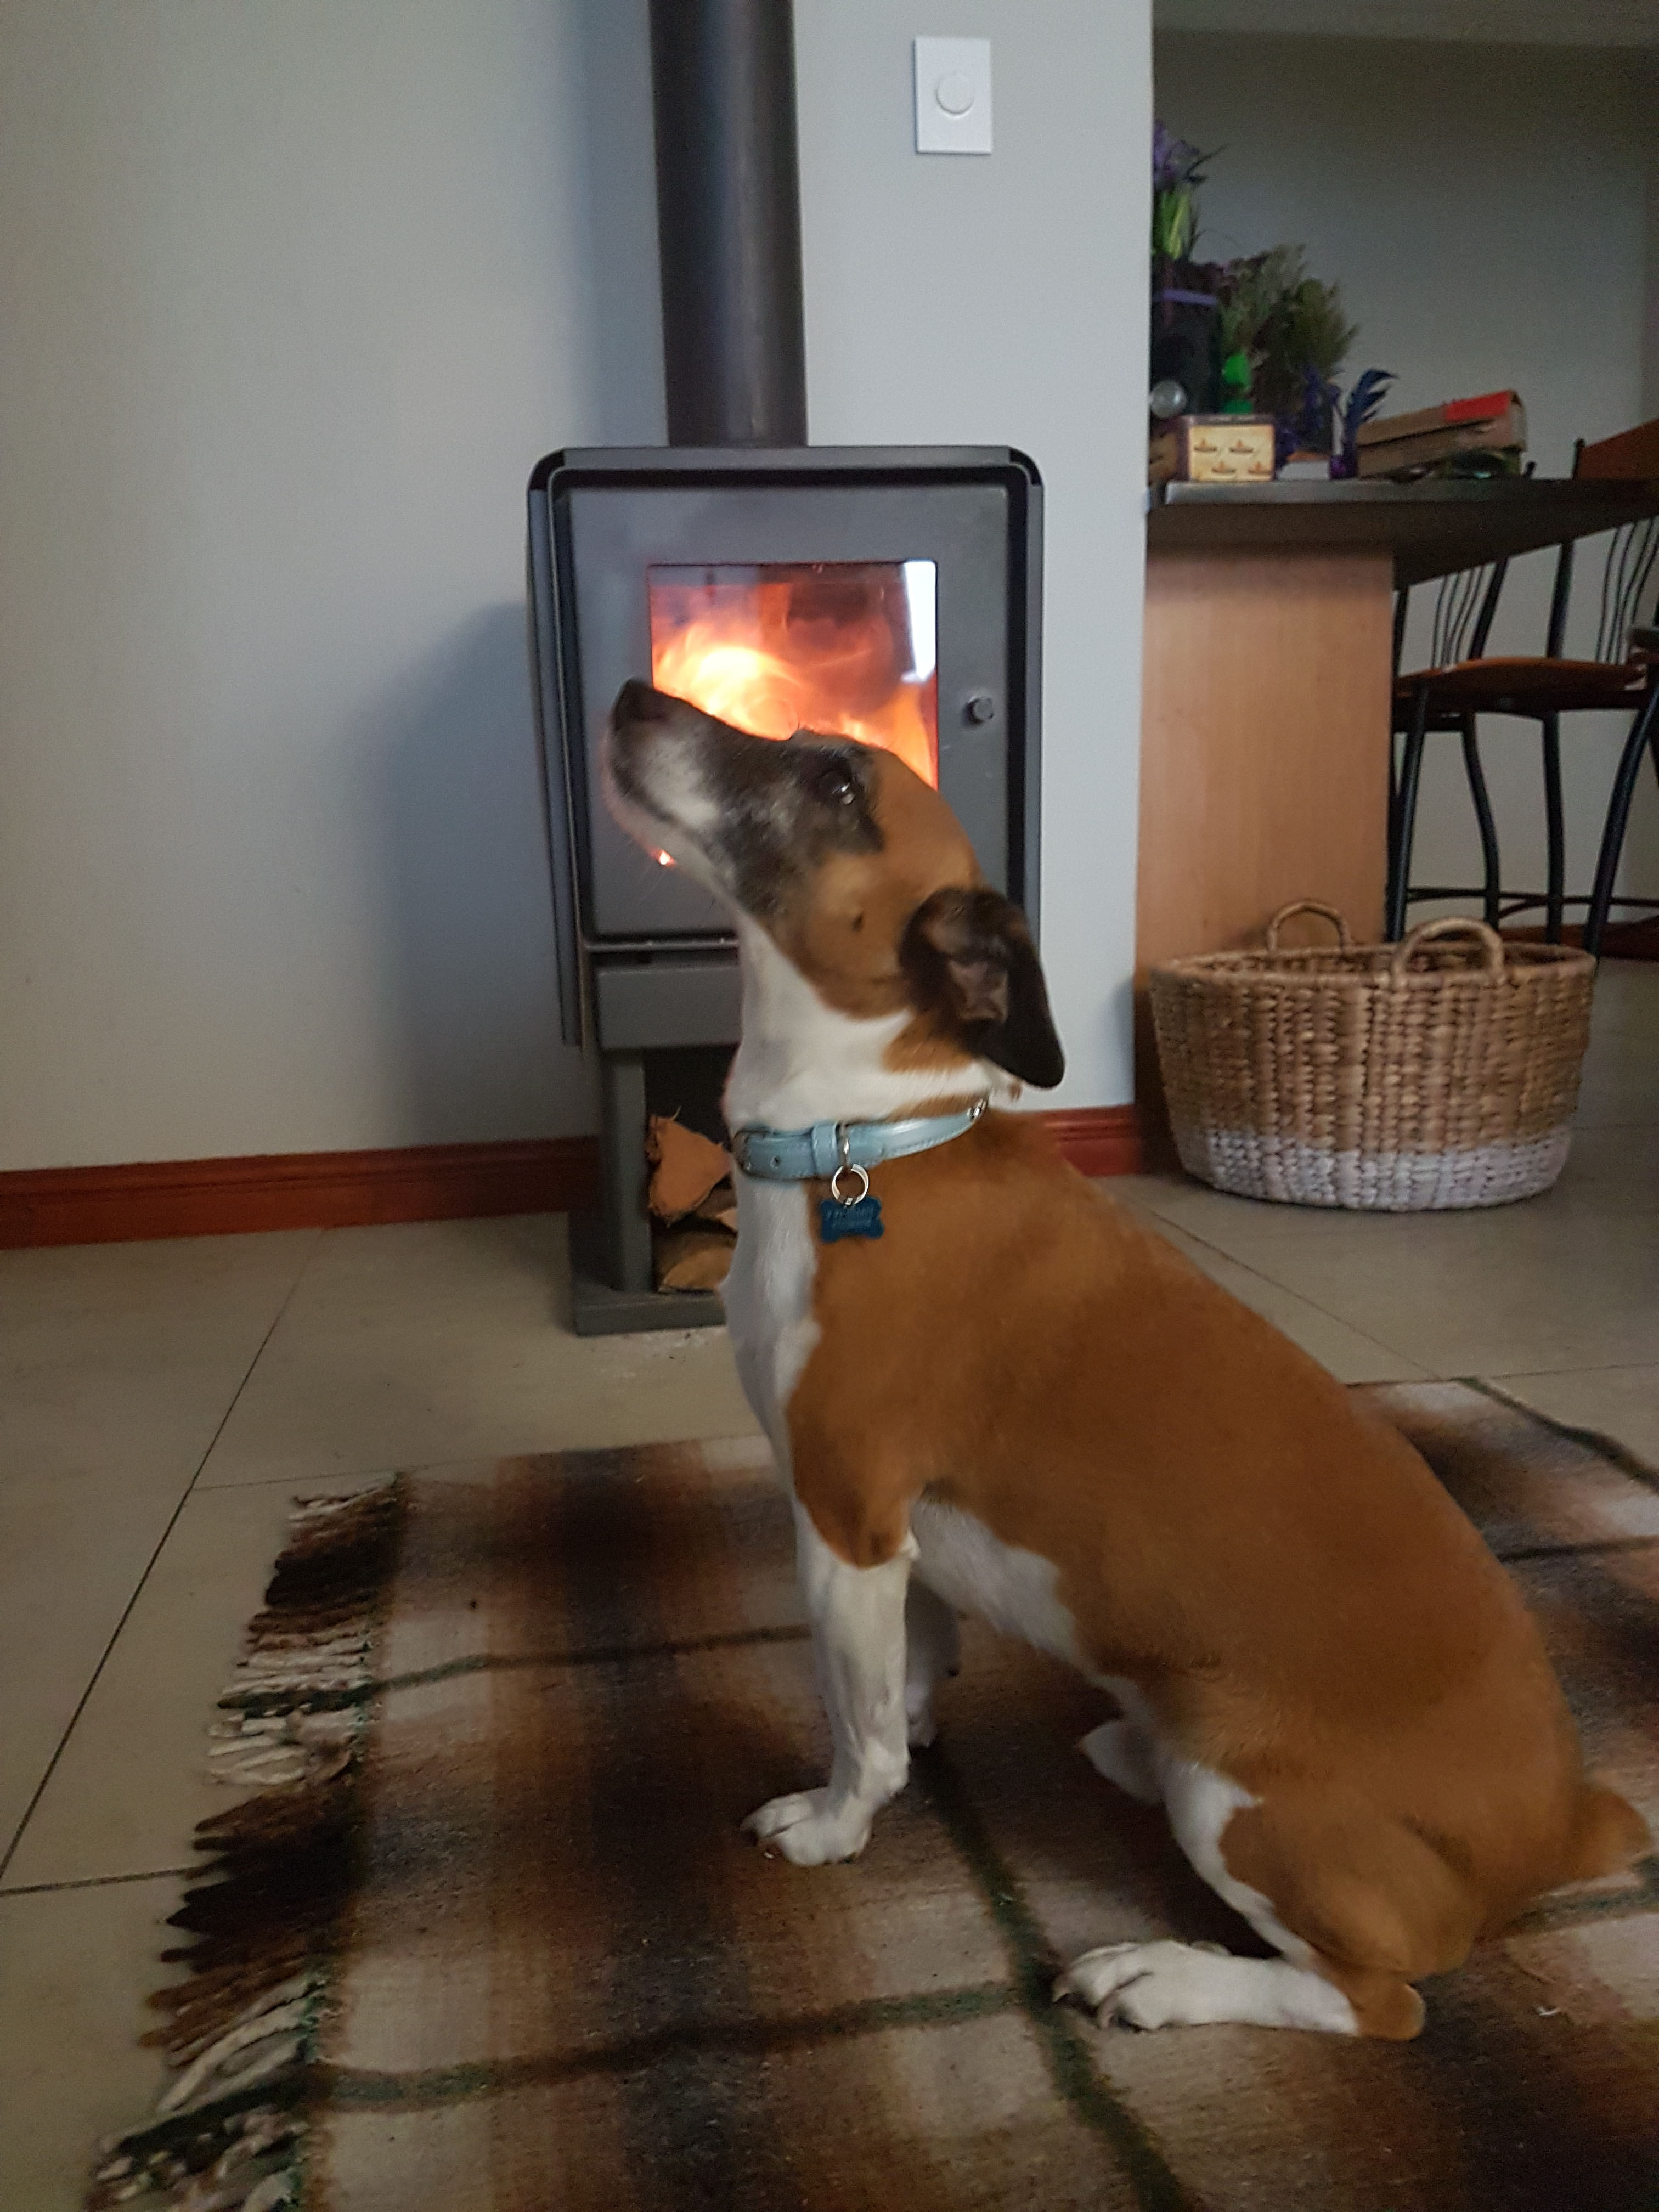 Sweet boy dog with neck extended for full warmth in front of the fire.